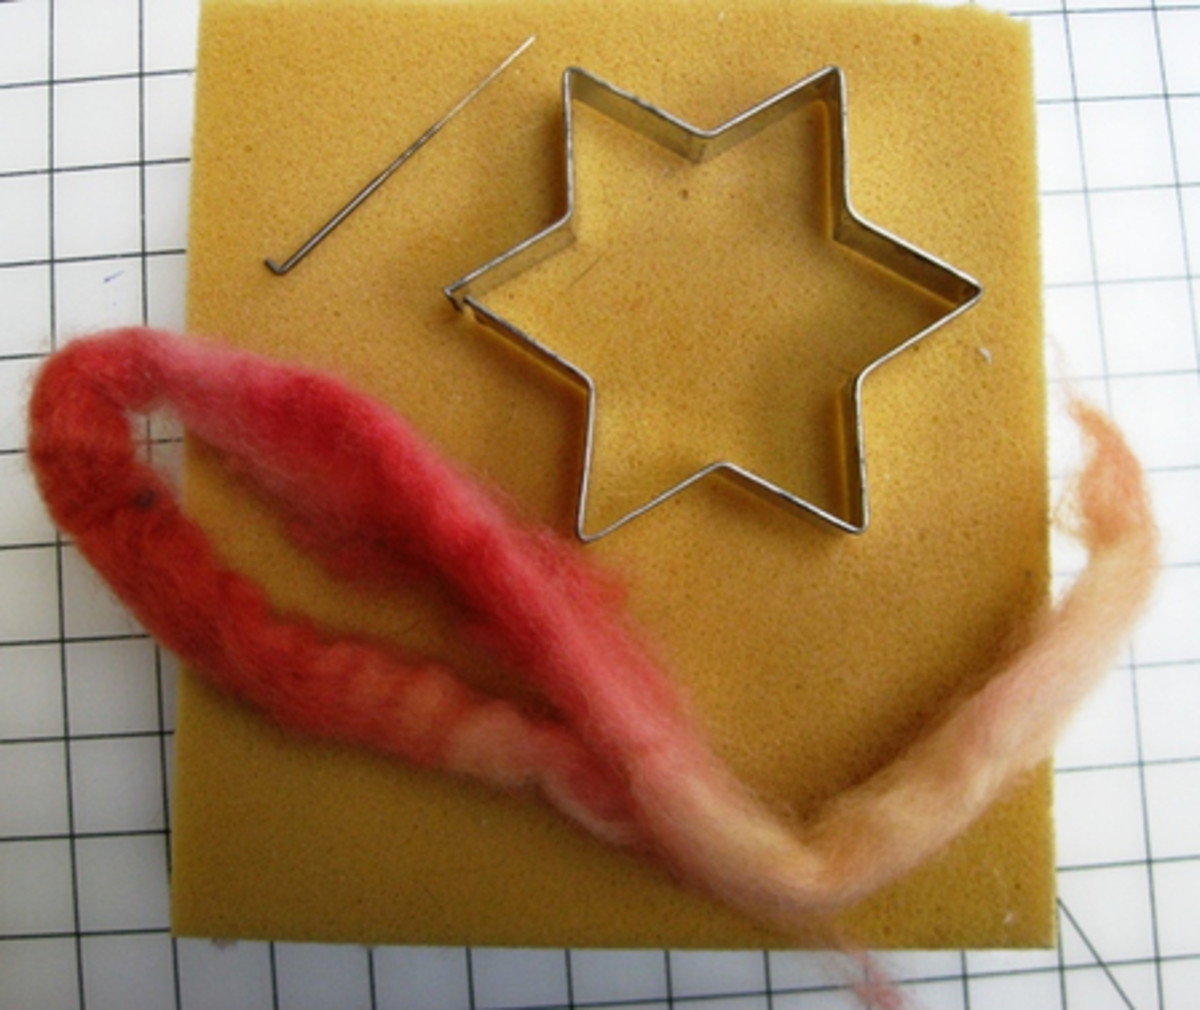 Needle felting supplies: felting needle, wool roving, cookie cutter, and foam pad for felting